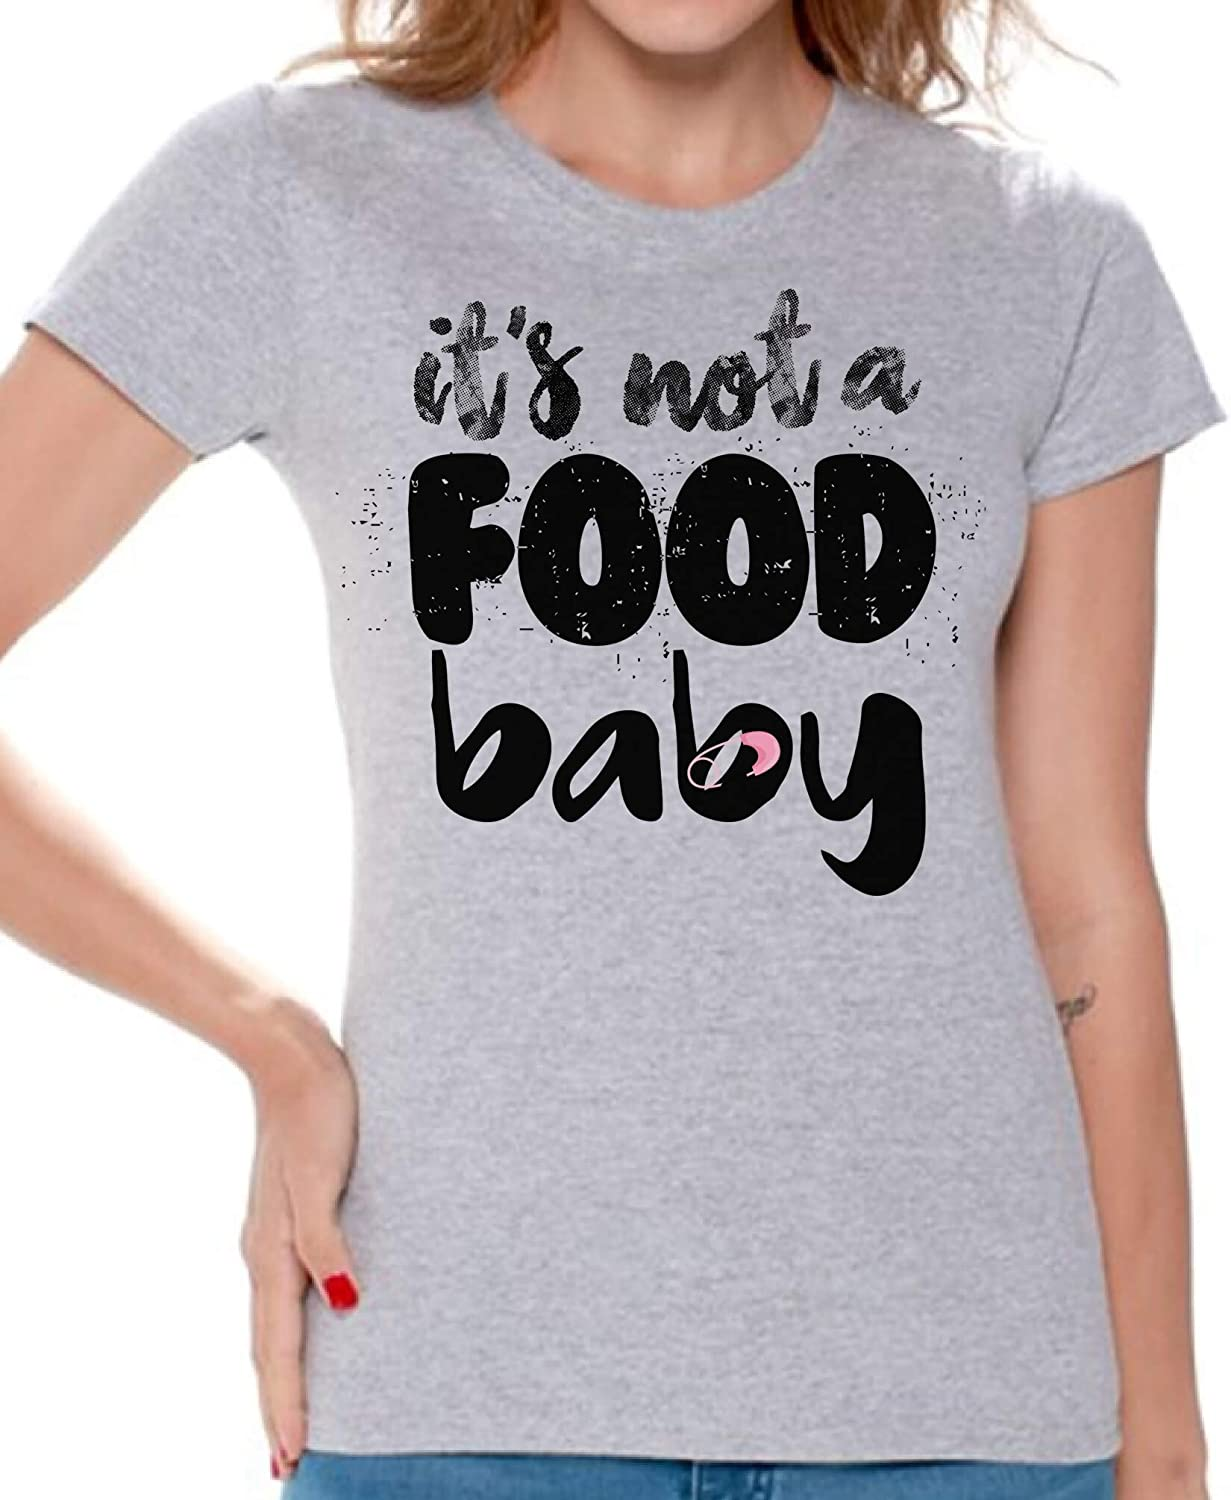 Awkward Styles It's Not a Food Baby Tshirt for Women I'm Pregnant Shirts Pregnancy Shirt